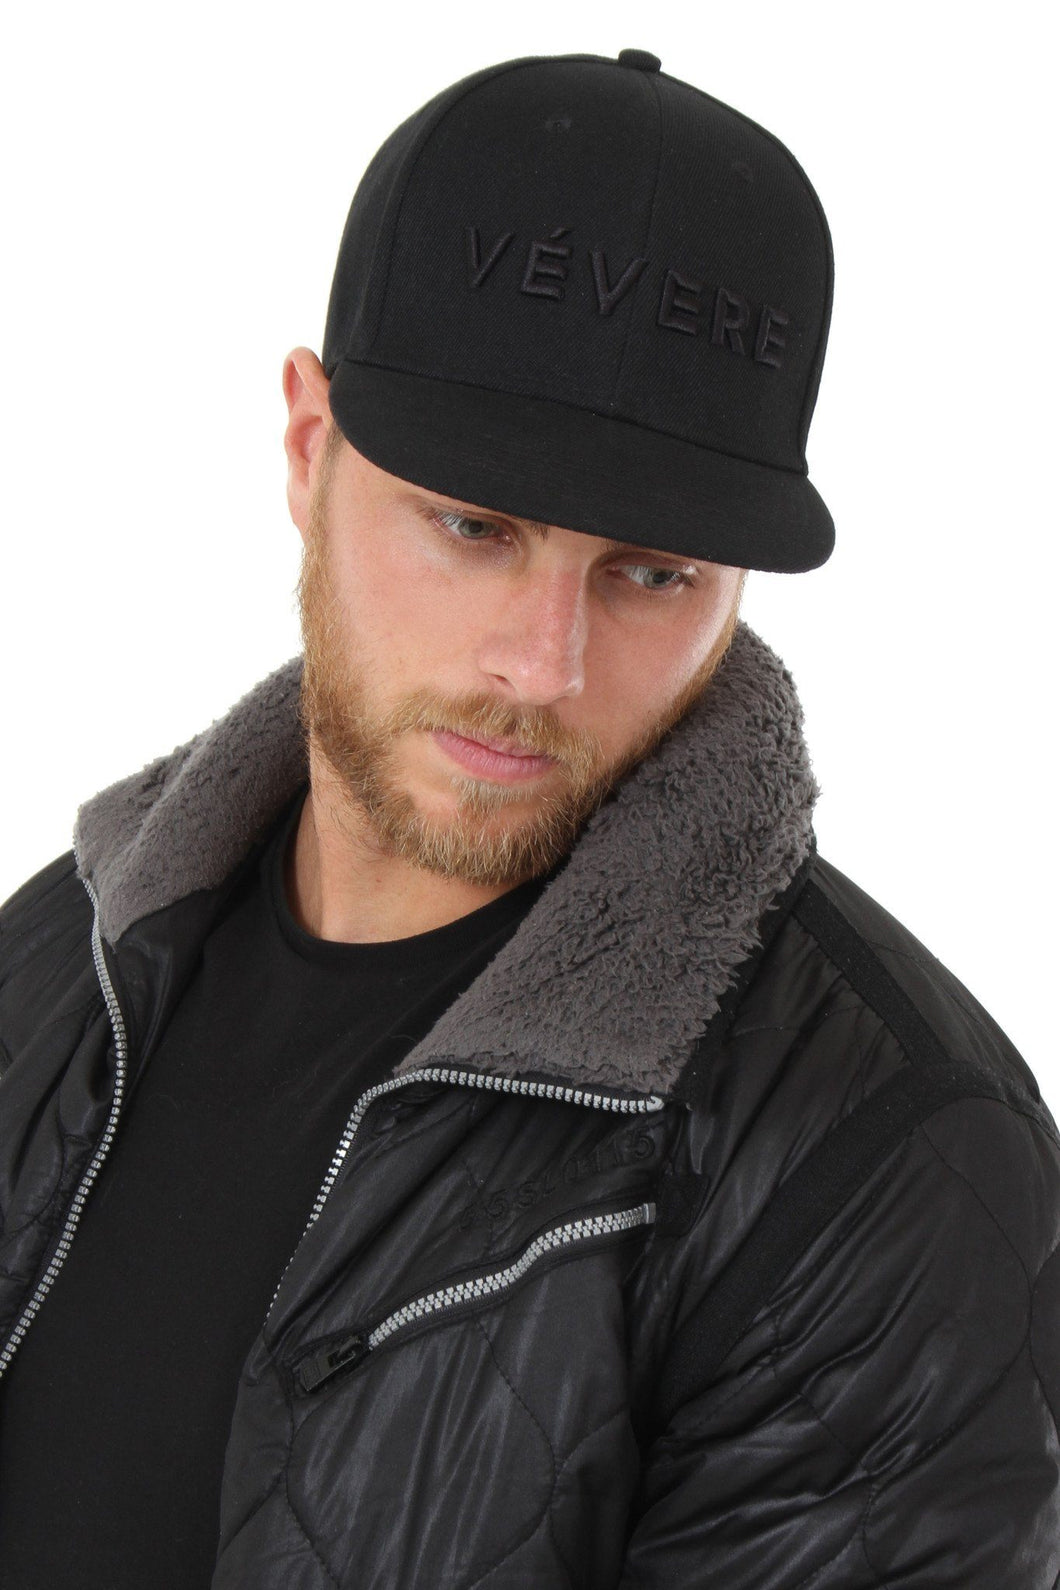 Napoli All Black Snapback Hat - Vevere